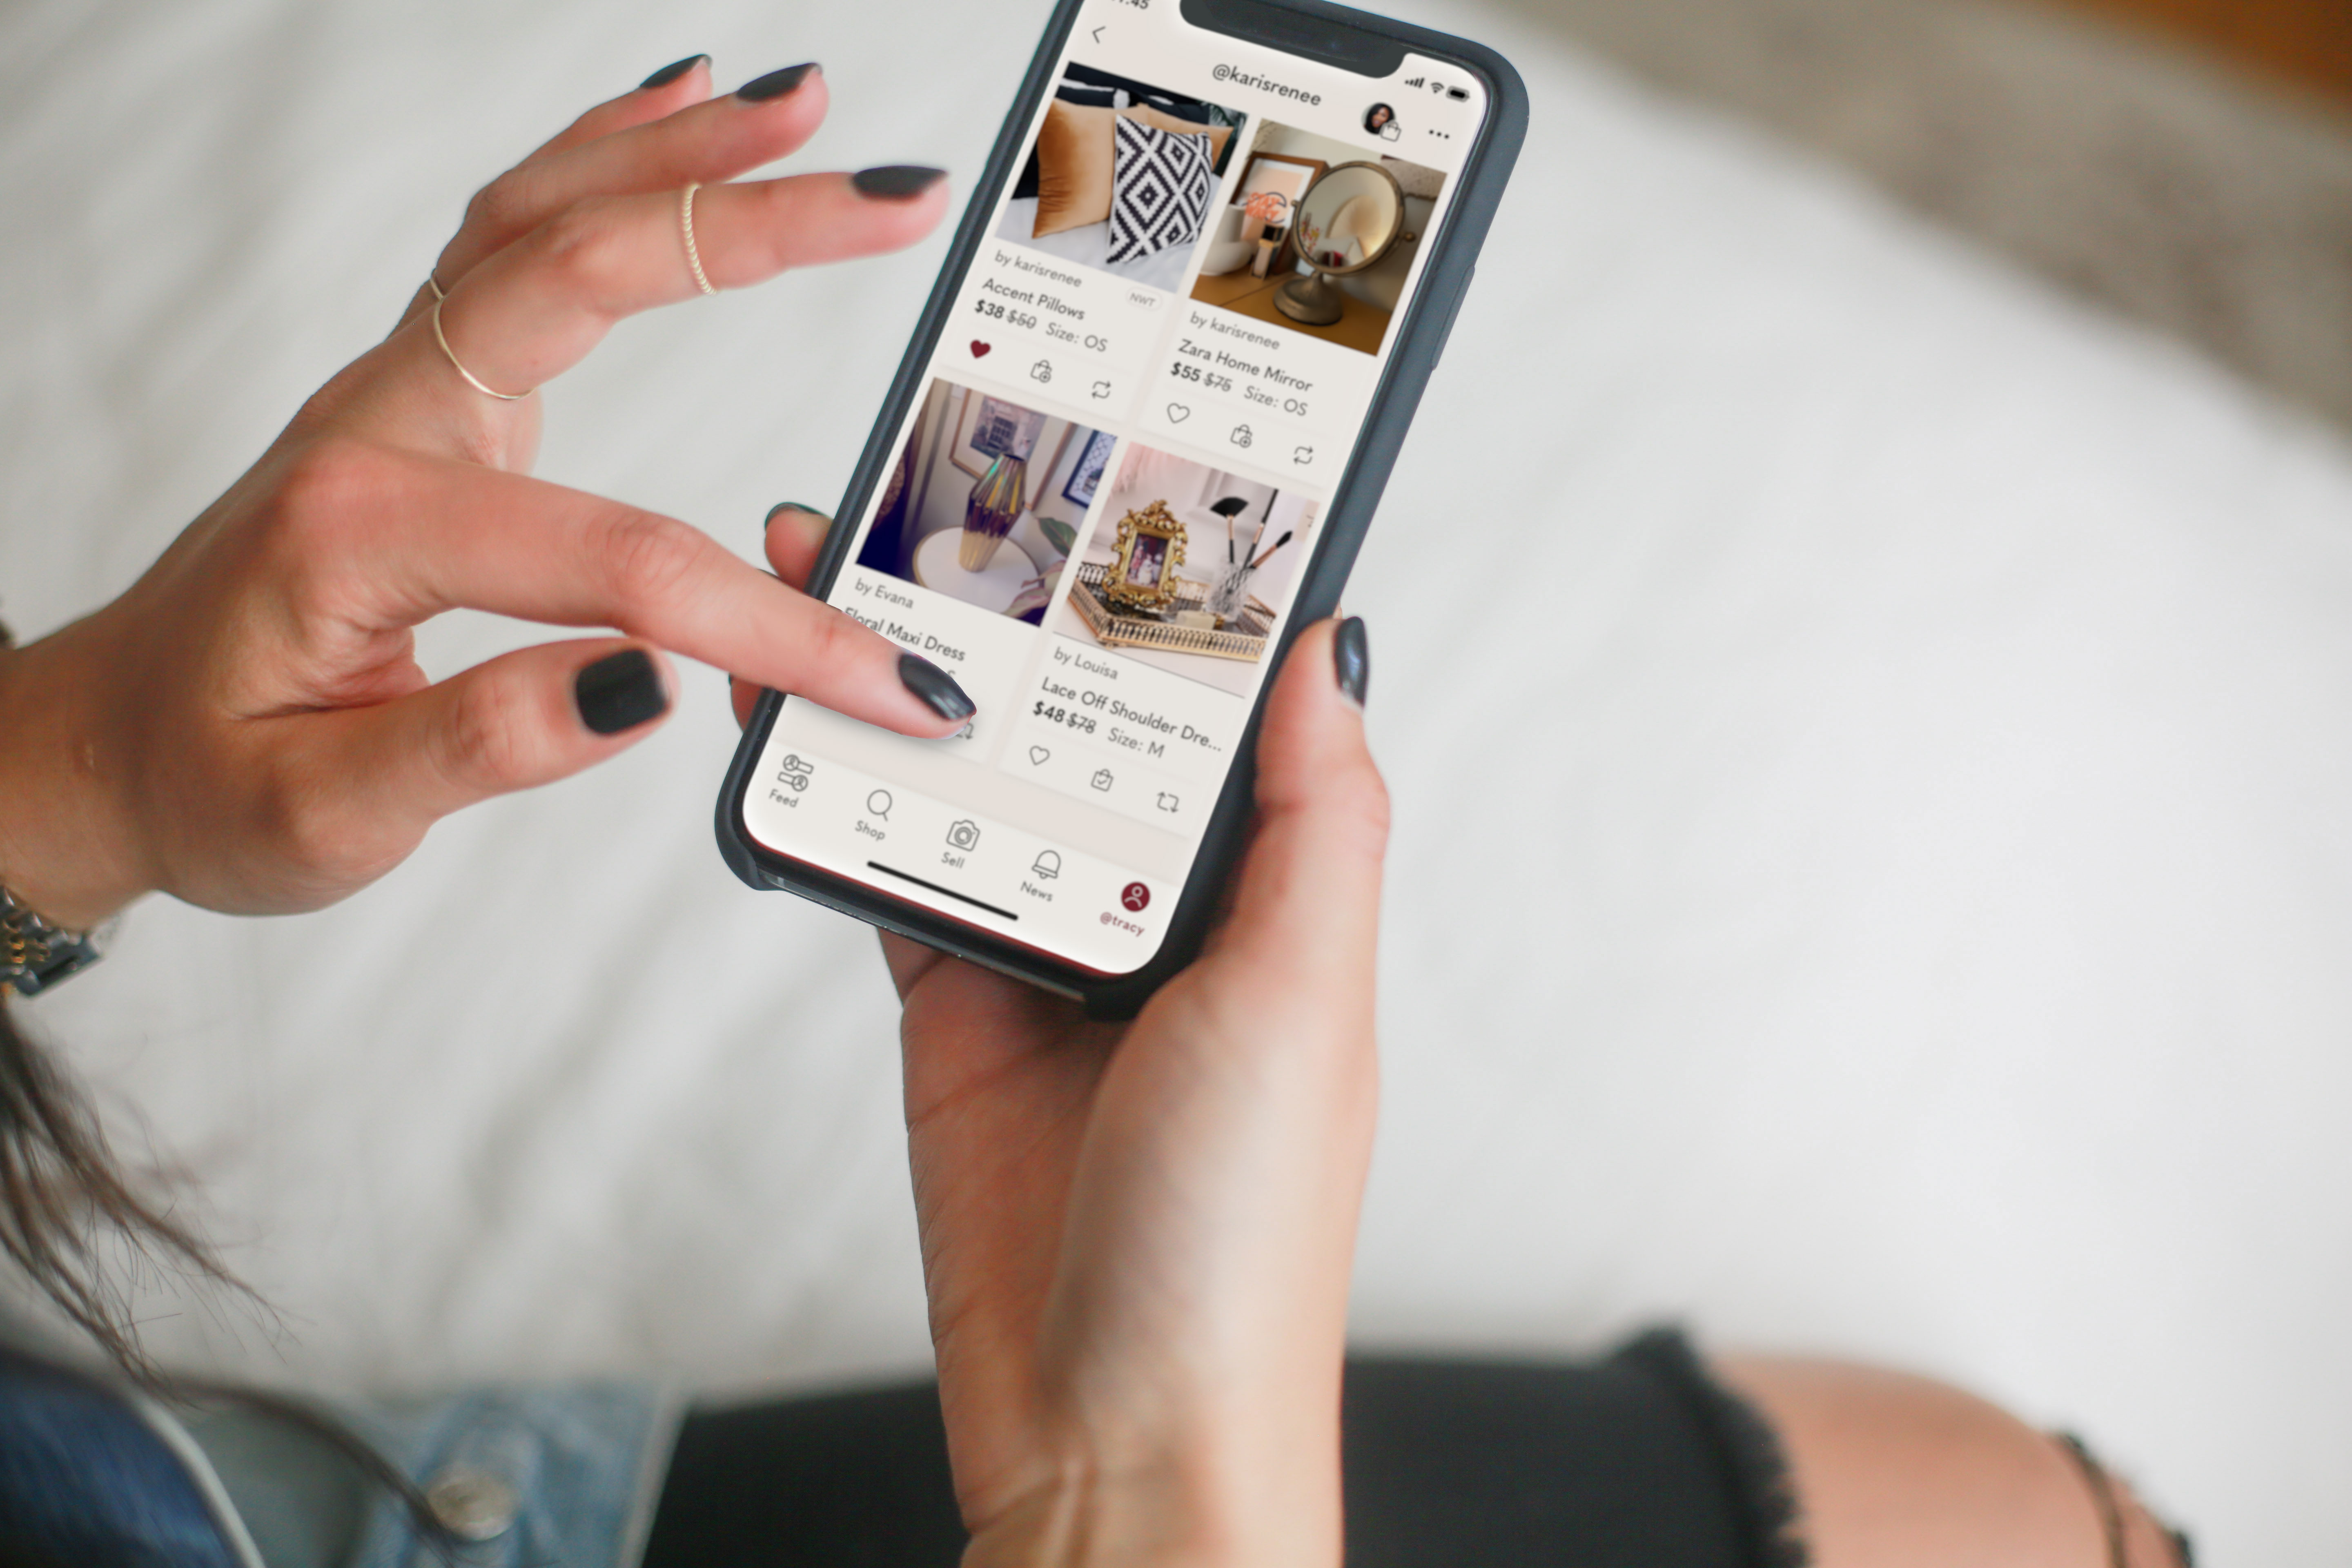 Poshmark combines resale, social selling and an inventory-zero model. Now, alongside its first earnings report after its IPO, the company announced that it's doubling down on video.